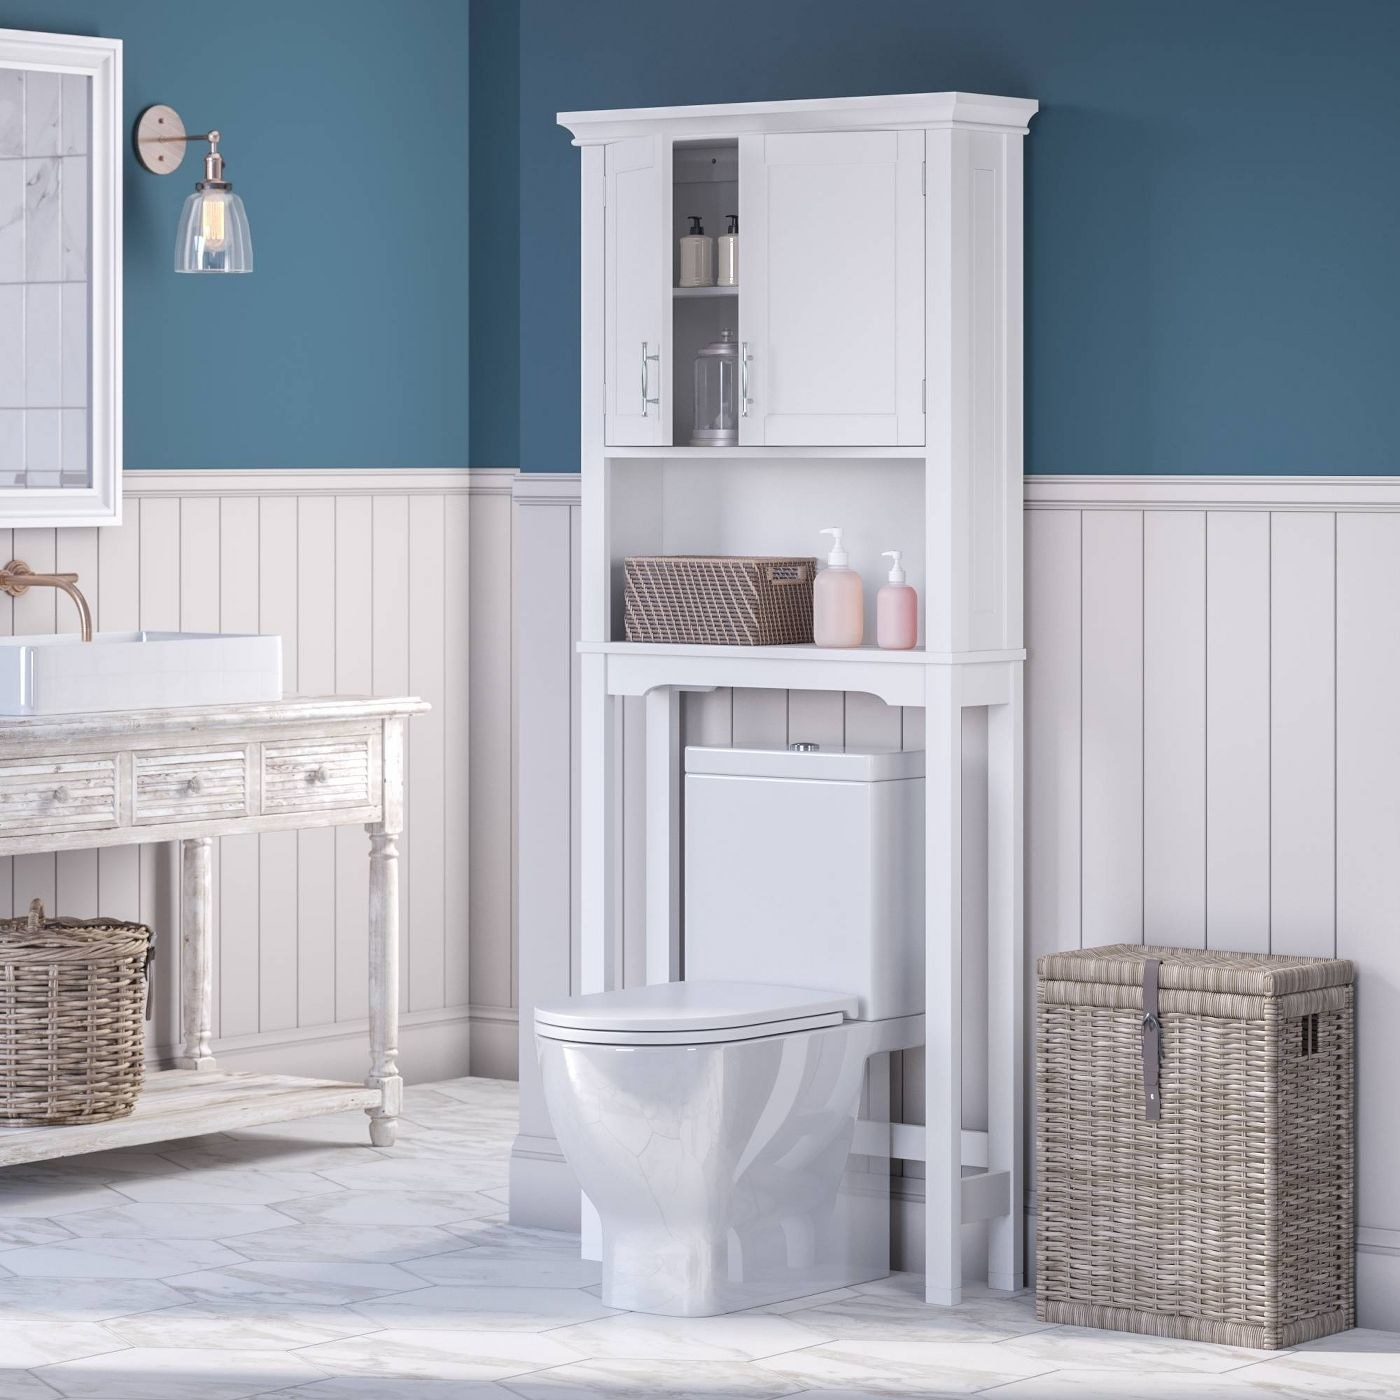 The whiteover-the-top toilet cabinet with adjustable shelves